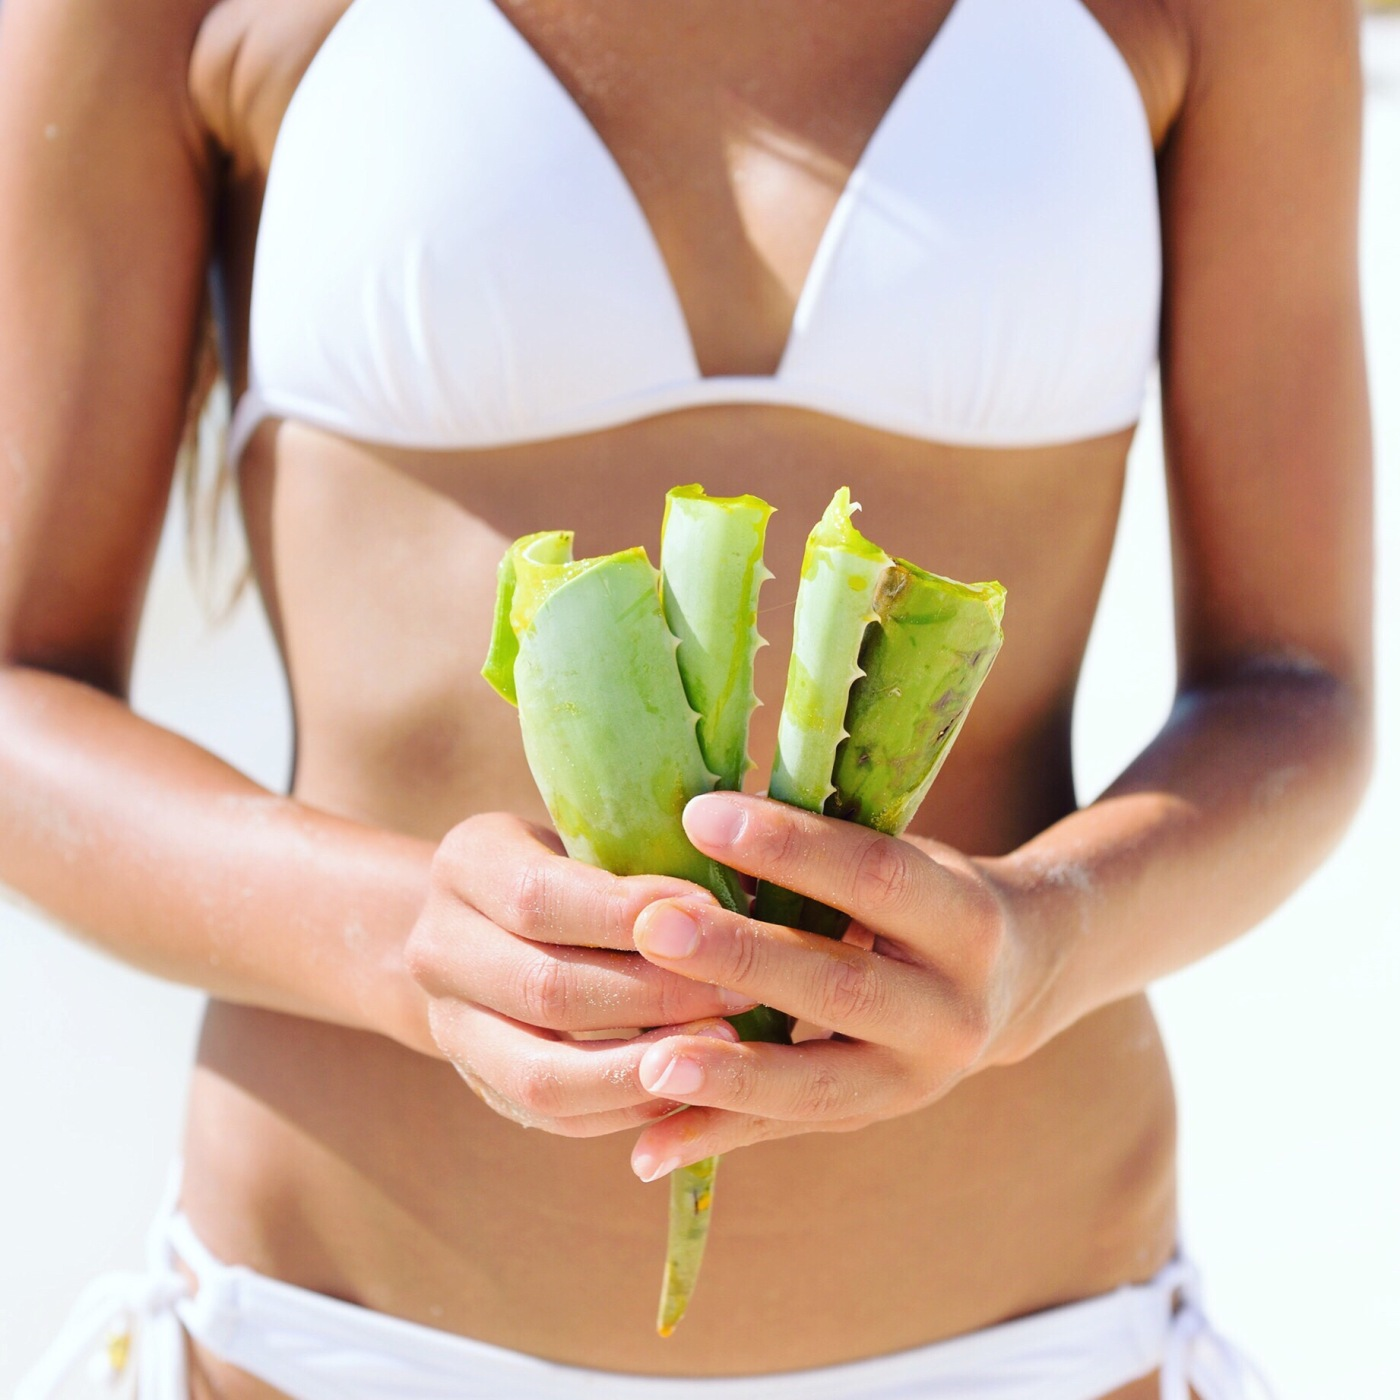 Aloe Vera - woman showing plant for skin care treatment using Aloes. Can be used as natural medicine or remedy against sunburn.